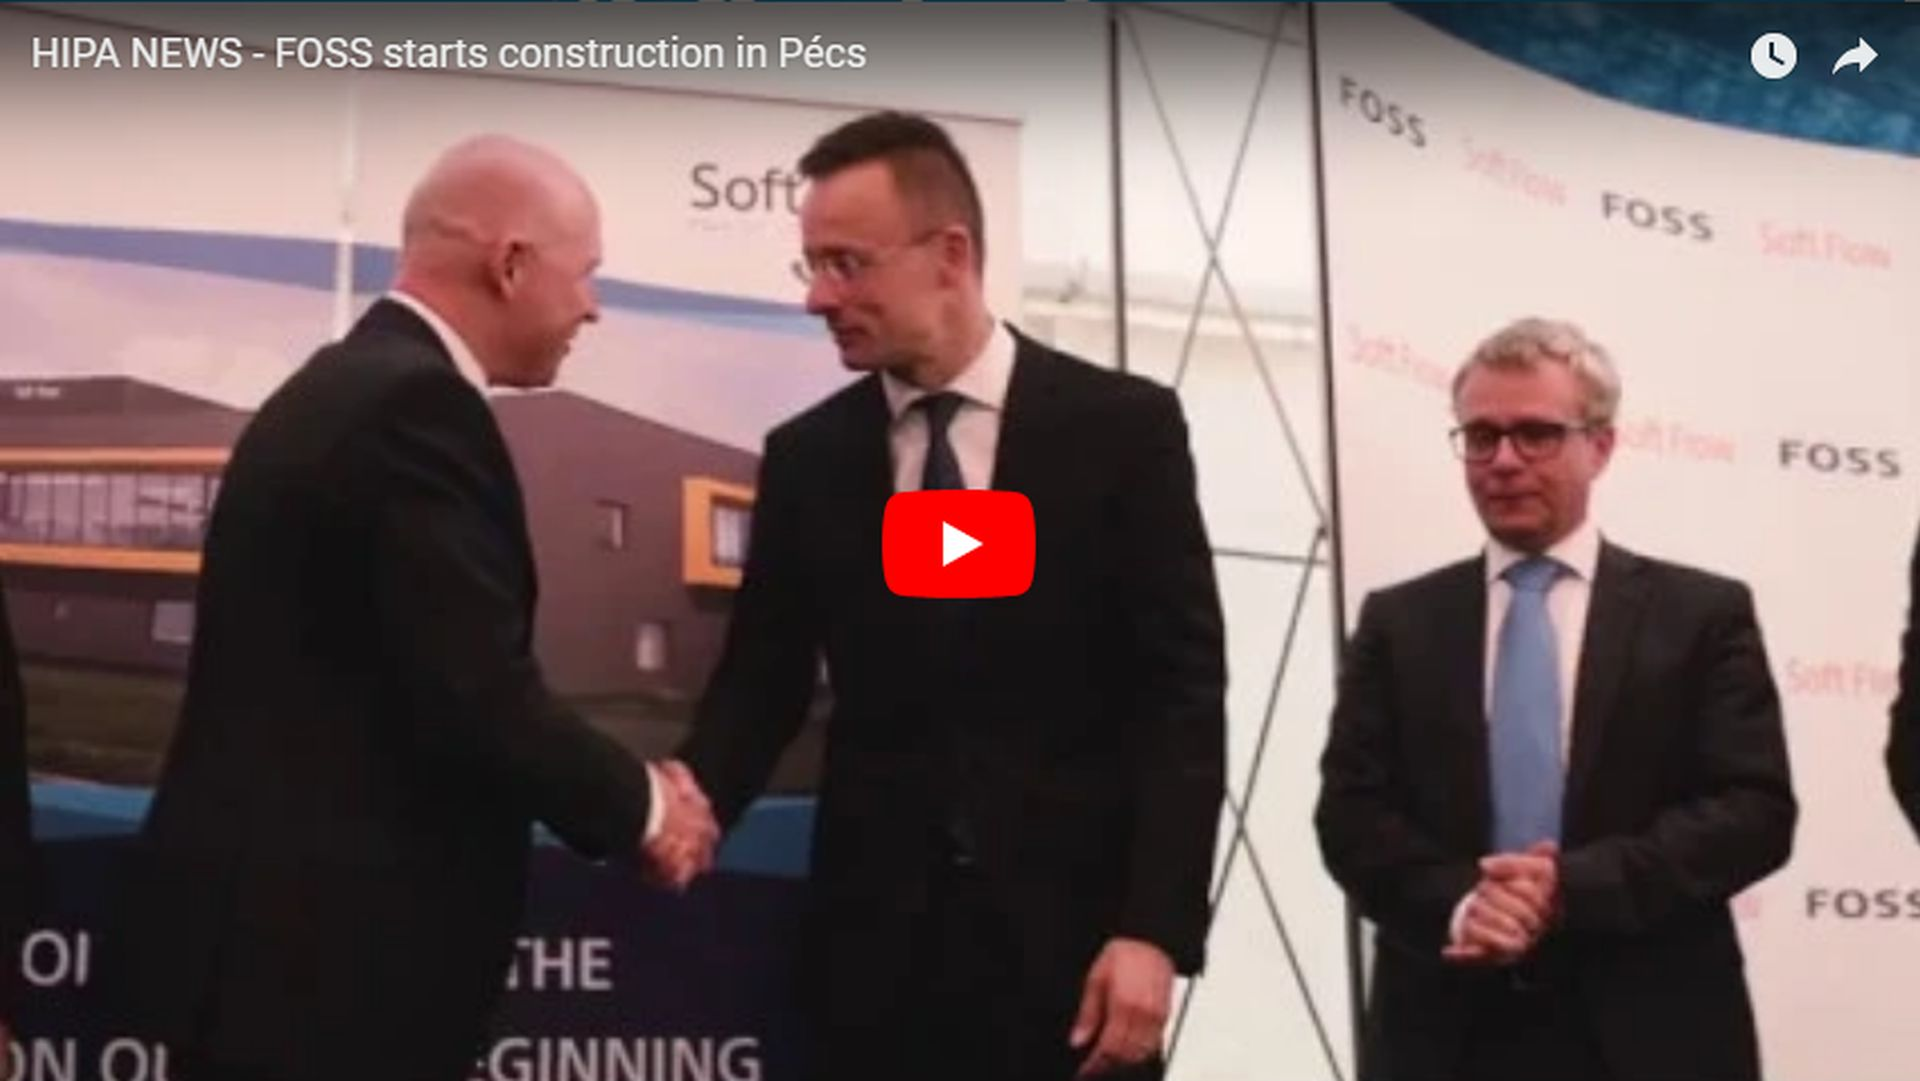 The foundation stone for the new FOSS biotechnology research centre has been laid - VIDEO REPORT